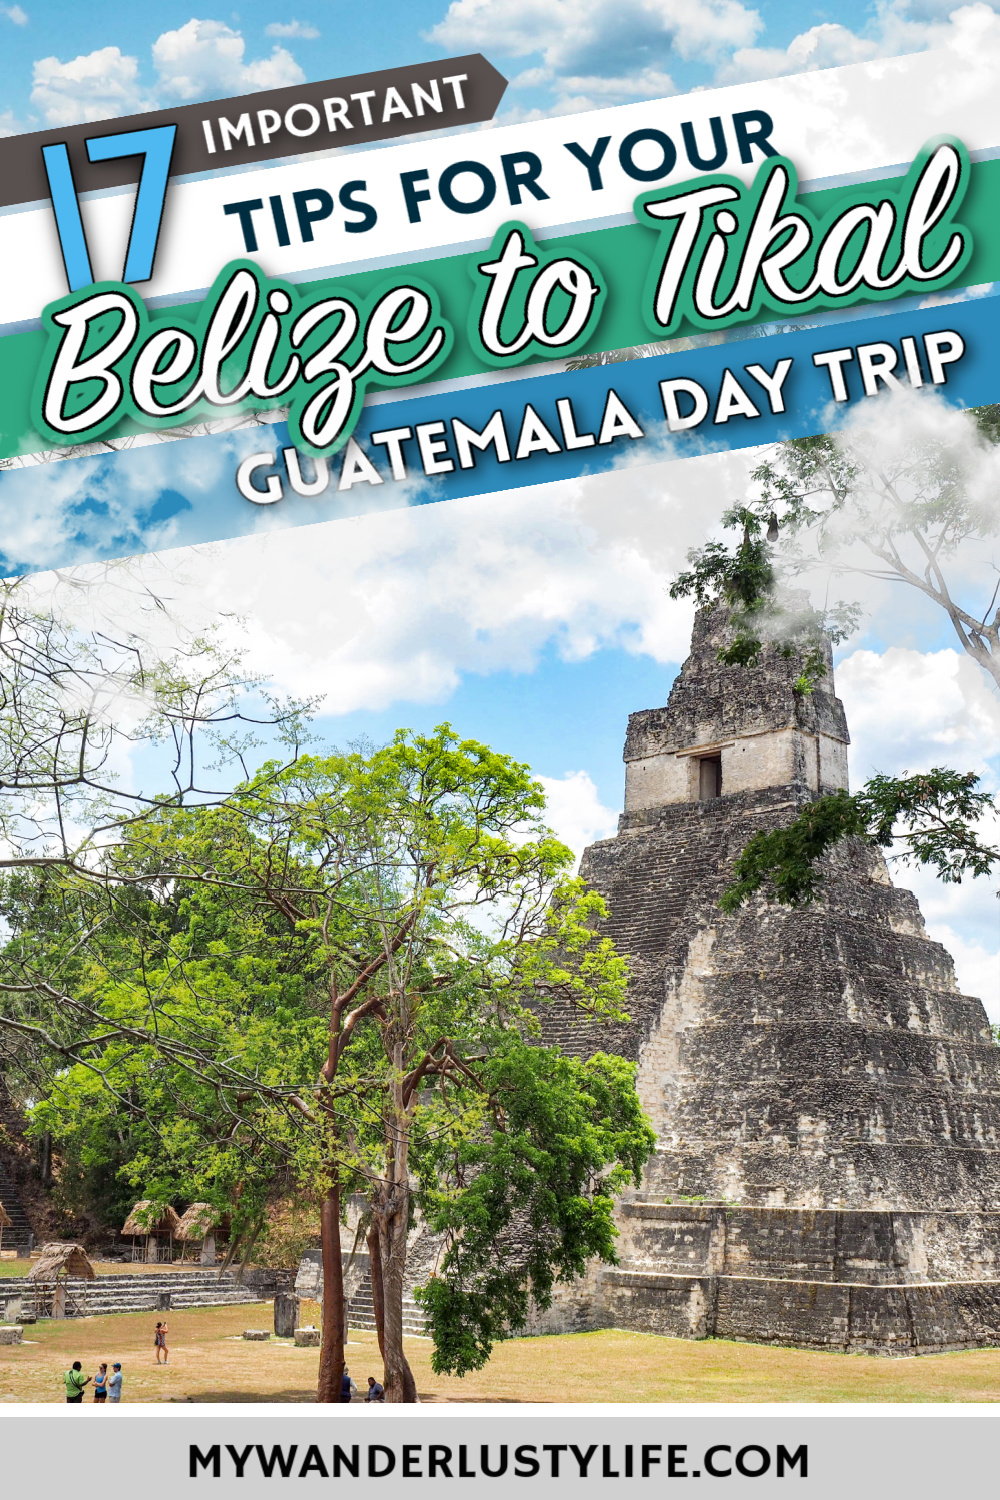 Belize to Tikal Day Trip: Important Tips for Your Guatemala Day Tours | San Ignacio, Belize to Tikal National Park, gallo beer, coatimundis, ancient Maya temples, Peten, Star Wars filming location